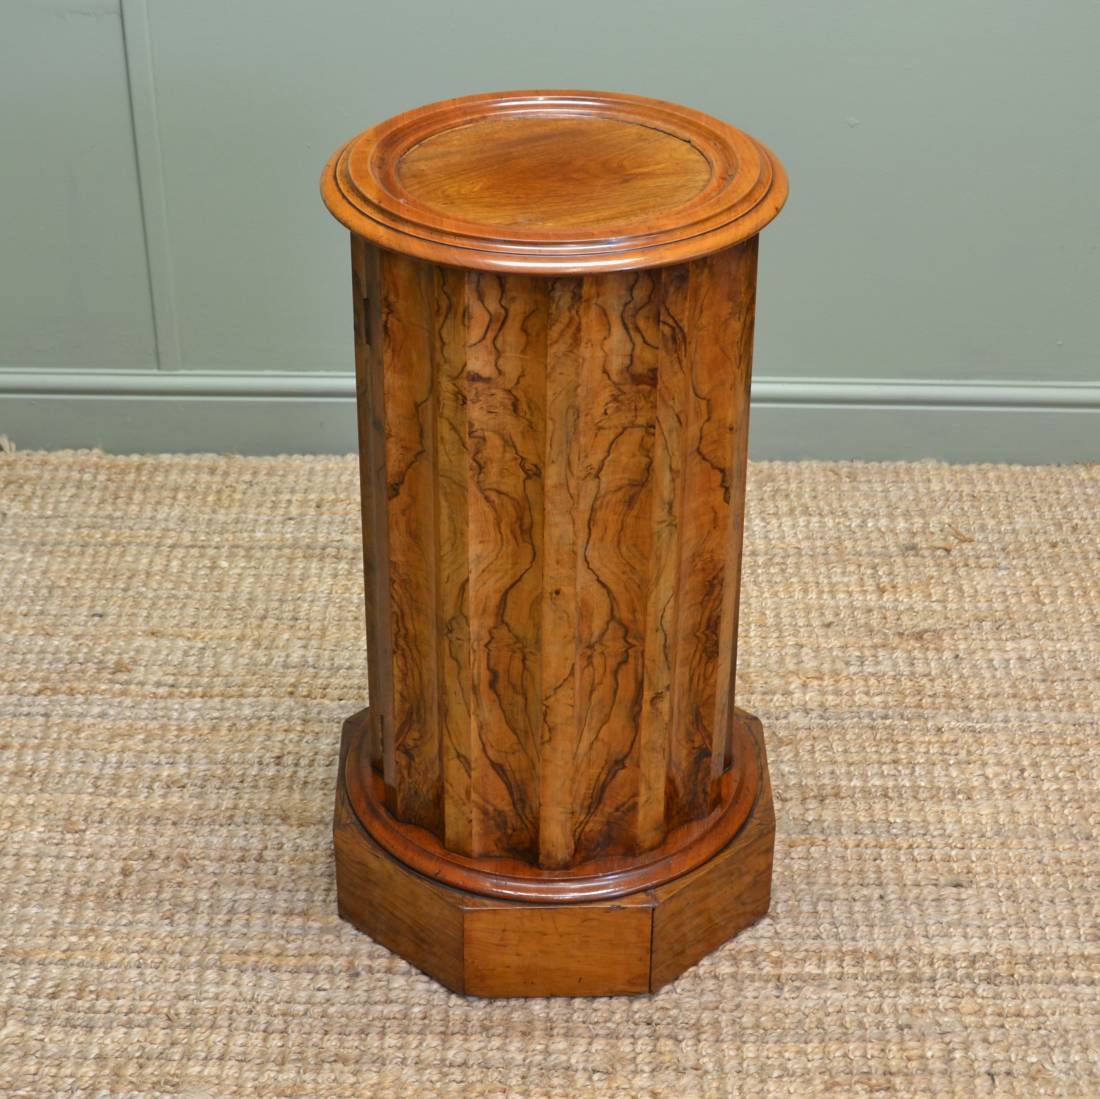 Figured Walnut Cylindrical Antique Pot Cupboard with Scalloped Edge.